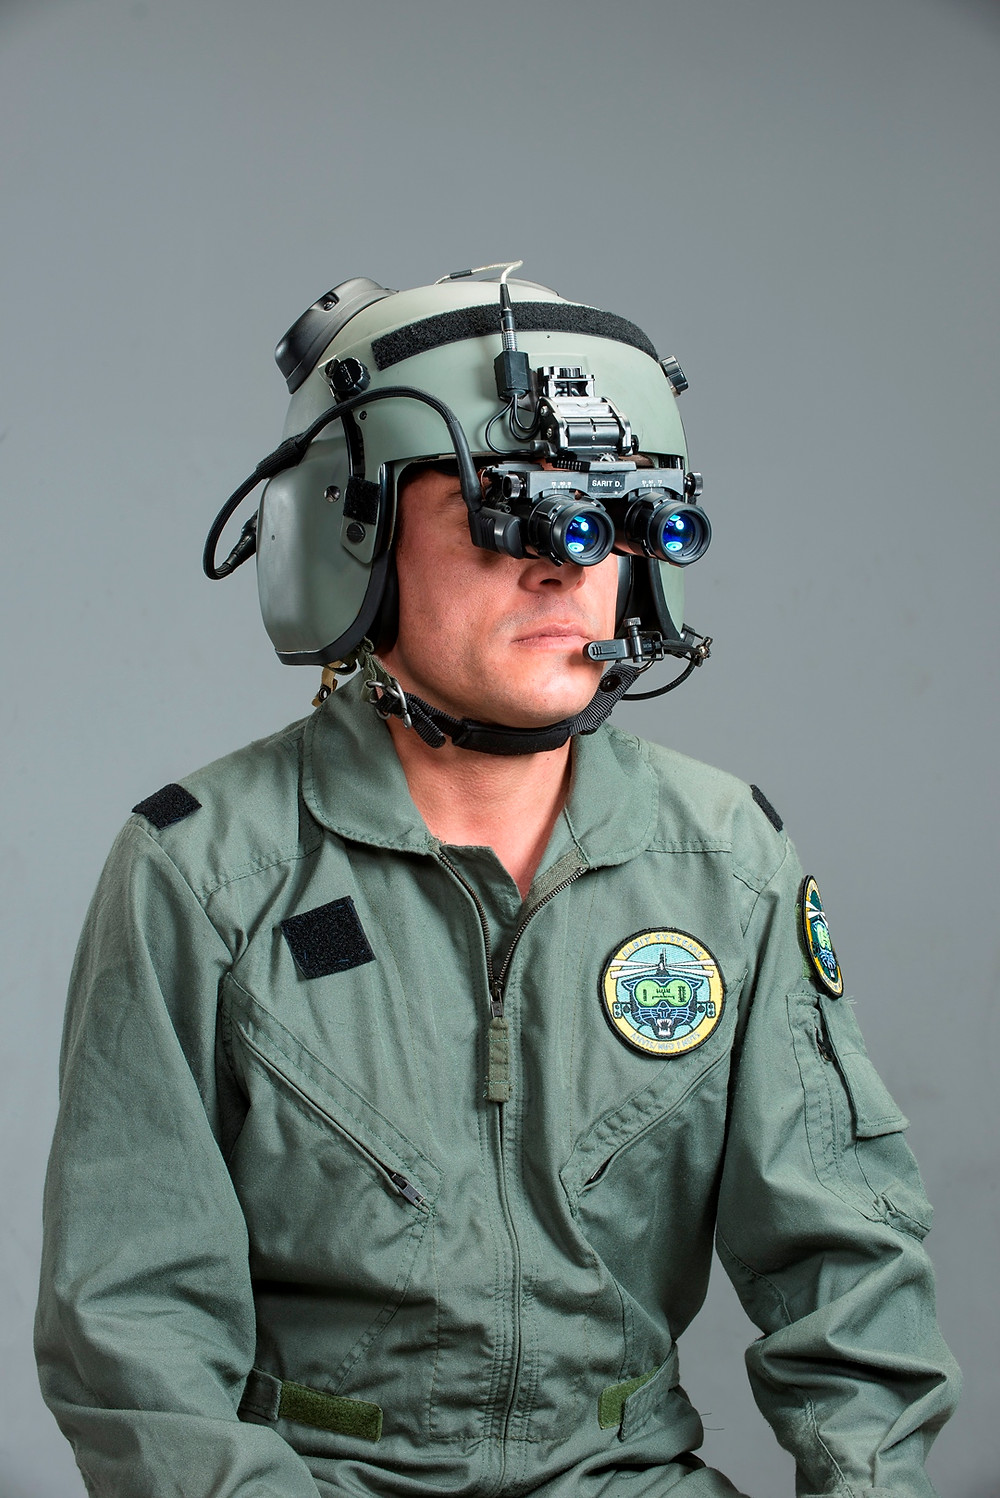 Elbit Systems US subsidiary awarded a contract to supply common helmet mounted displays to the US Army